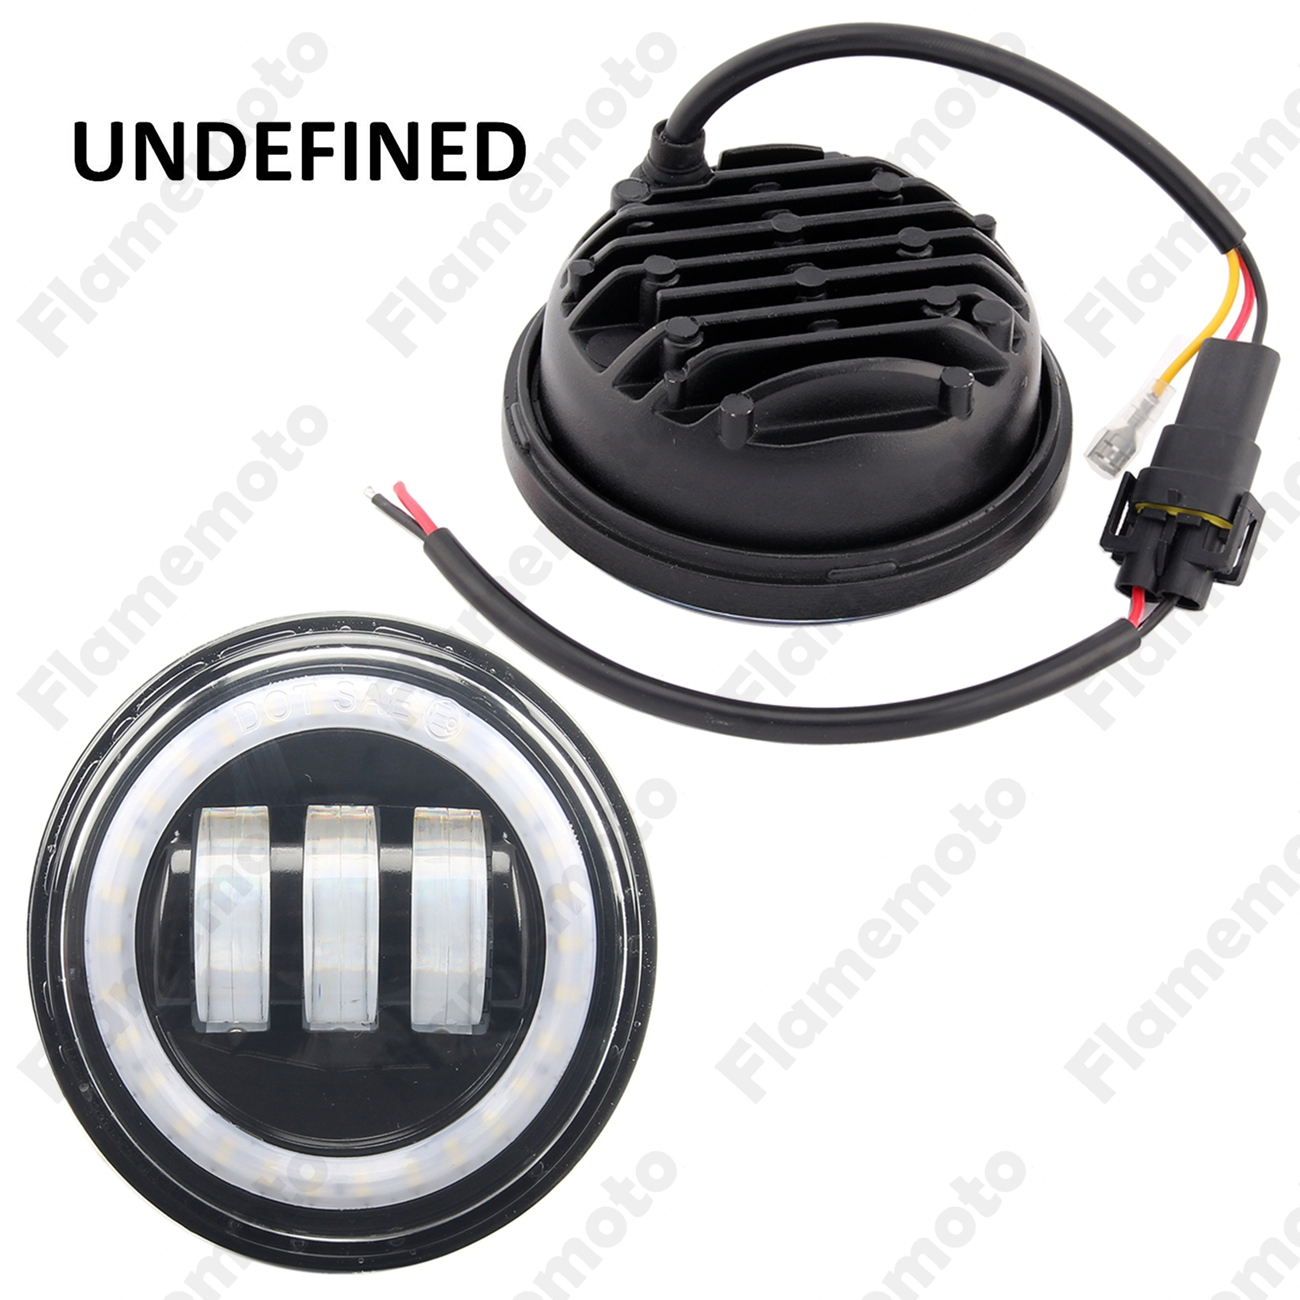 4 1/2 Black LED Auxiliary White Halo DRL Motorcycle Fog Light Lamps For Harley Touring Electra Glide Dyna CVO UNDEFINED